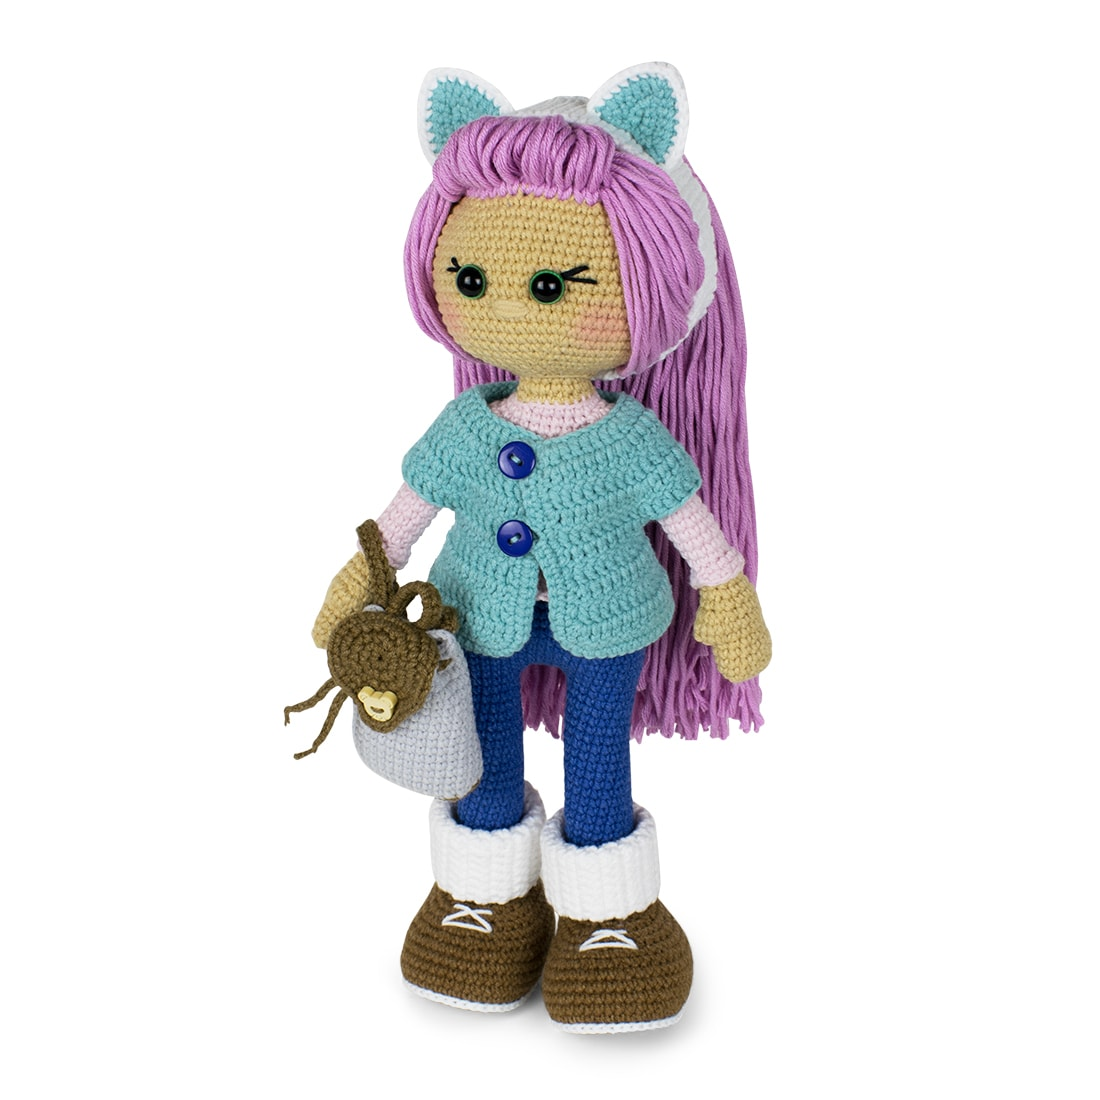 Crochet Molly Doll amigurumi pattern designed by Amigurumi Today